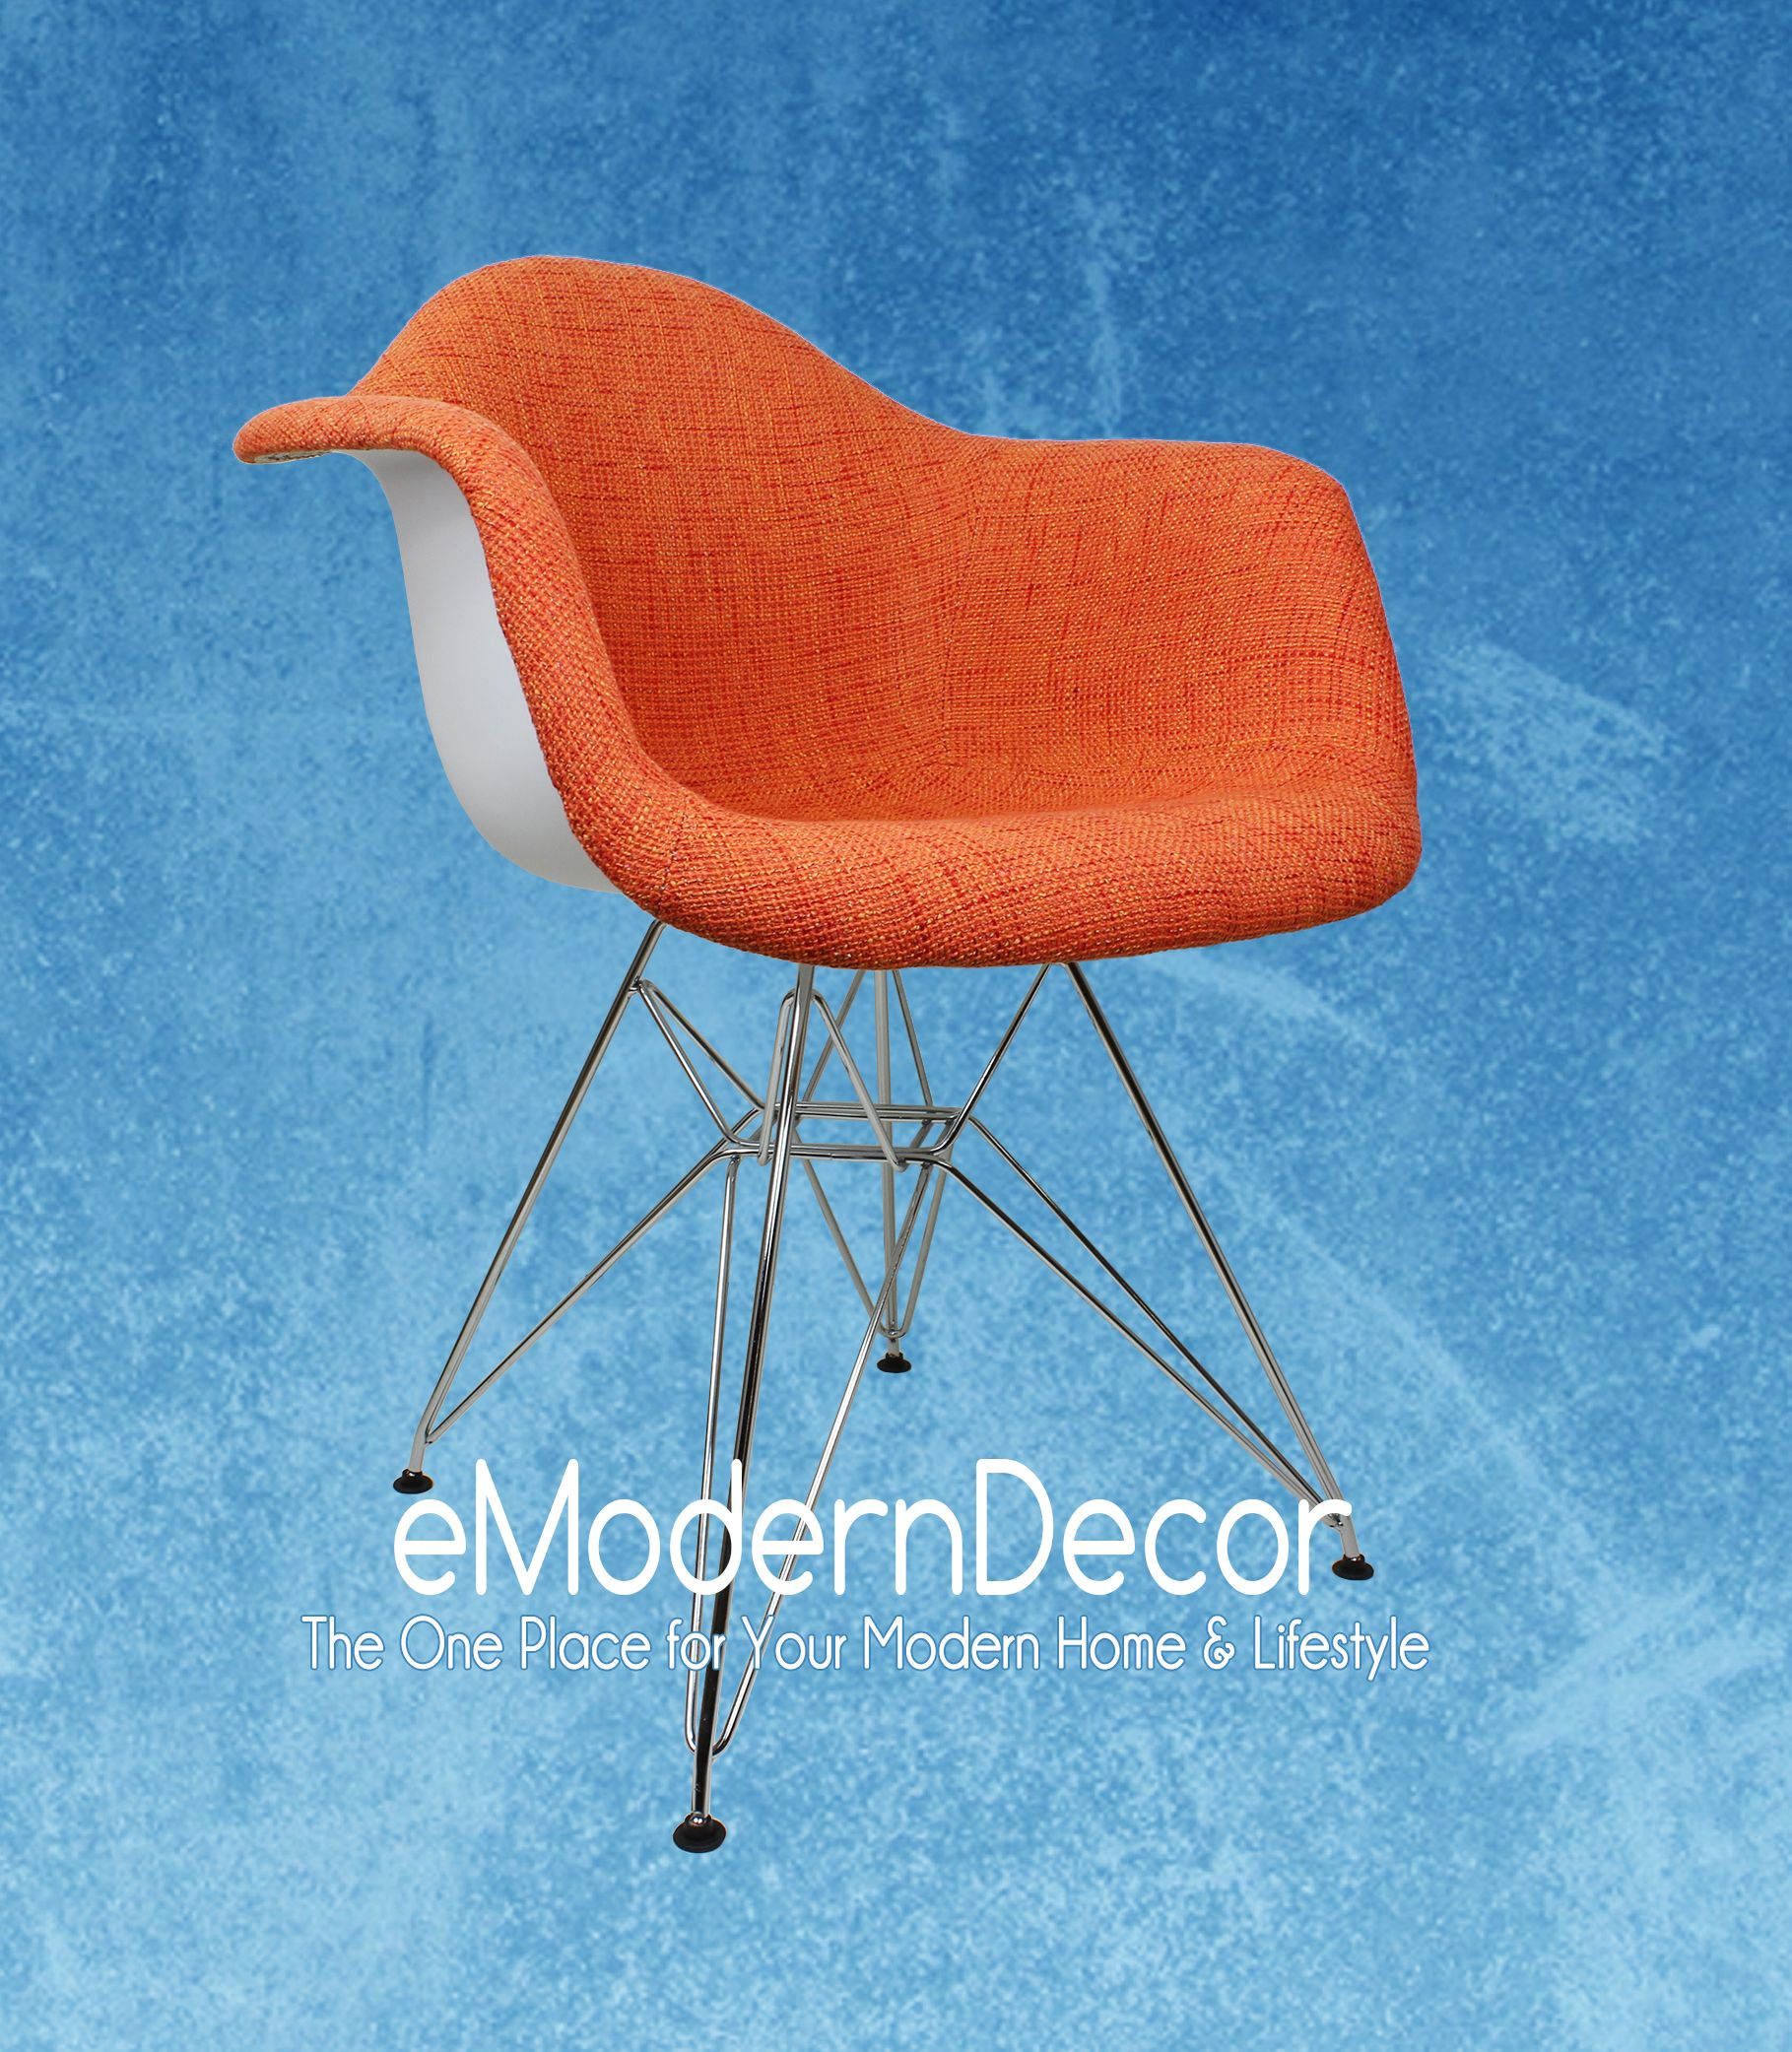 Your Modern Home Remodeling Superstore: Shop for Modern Looking ...